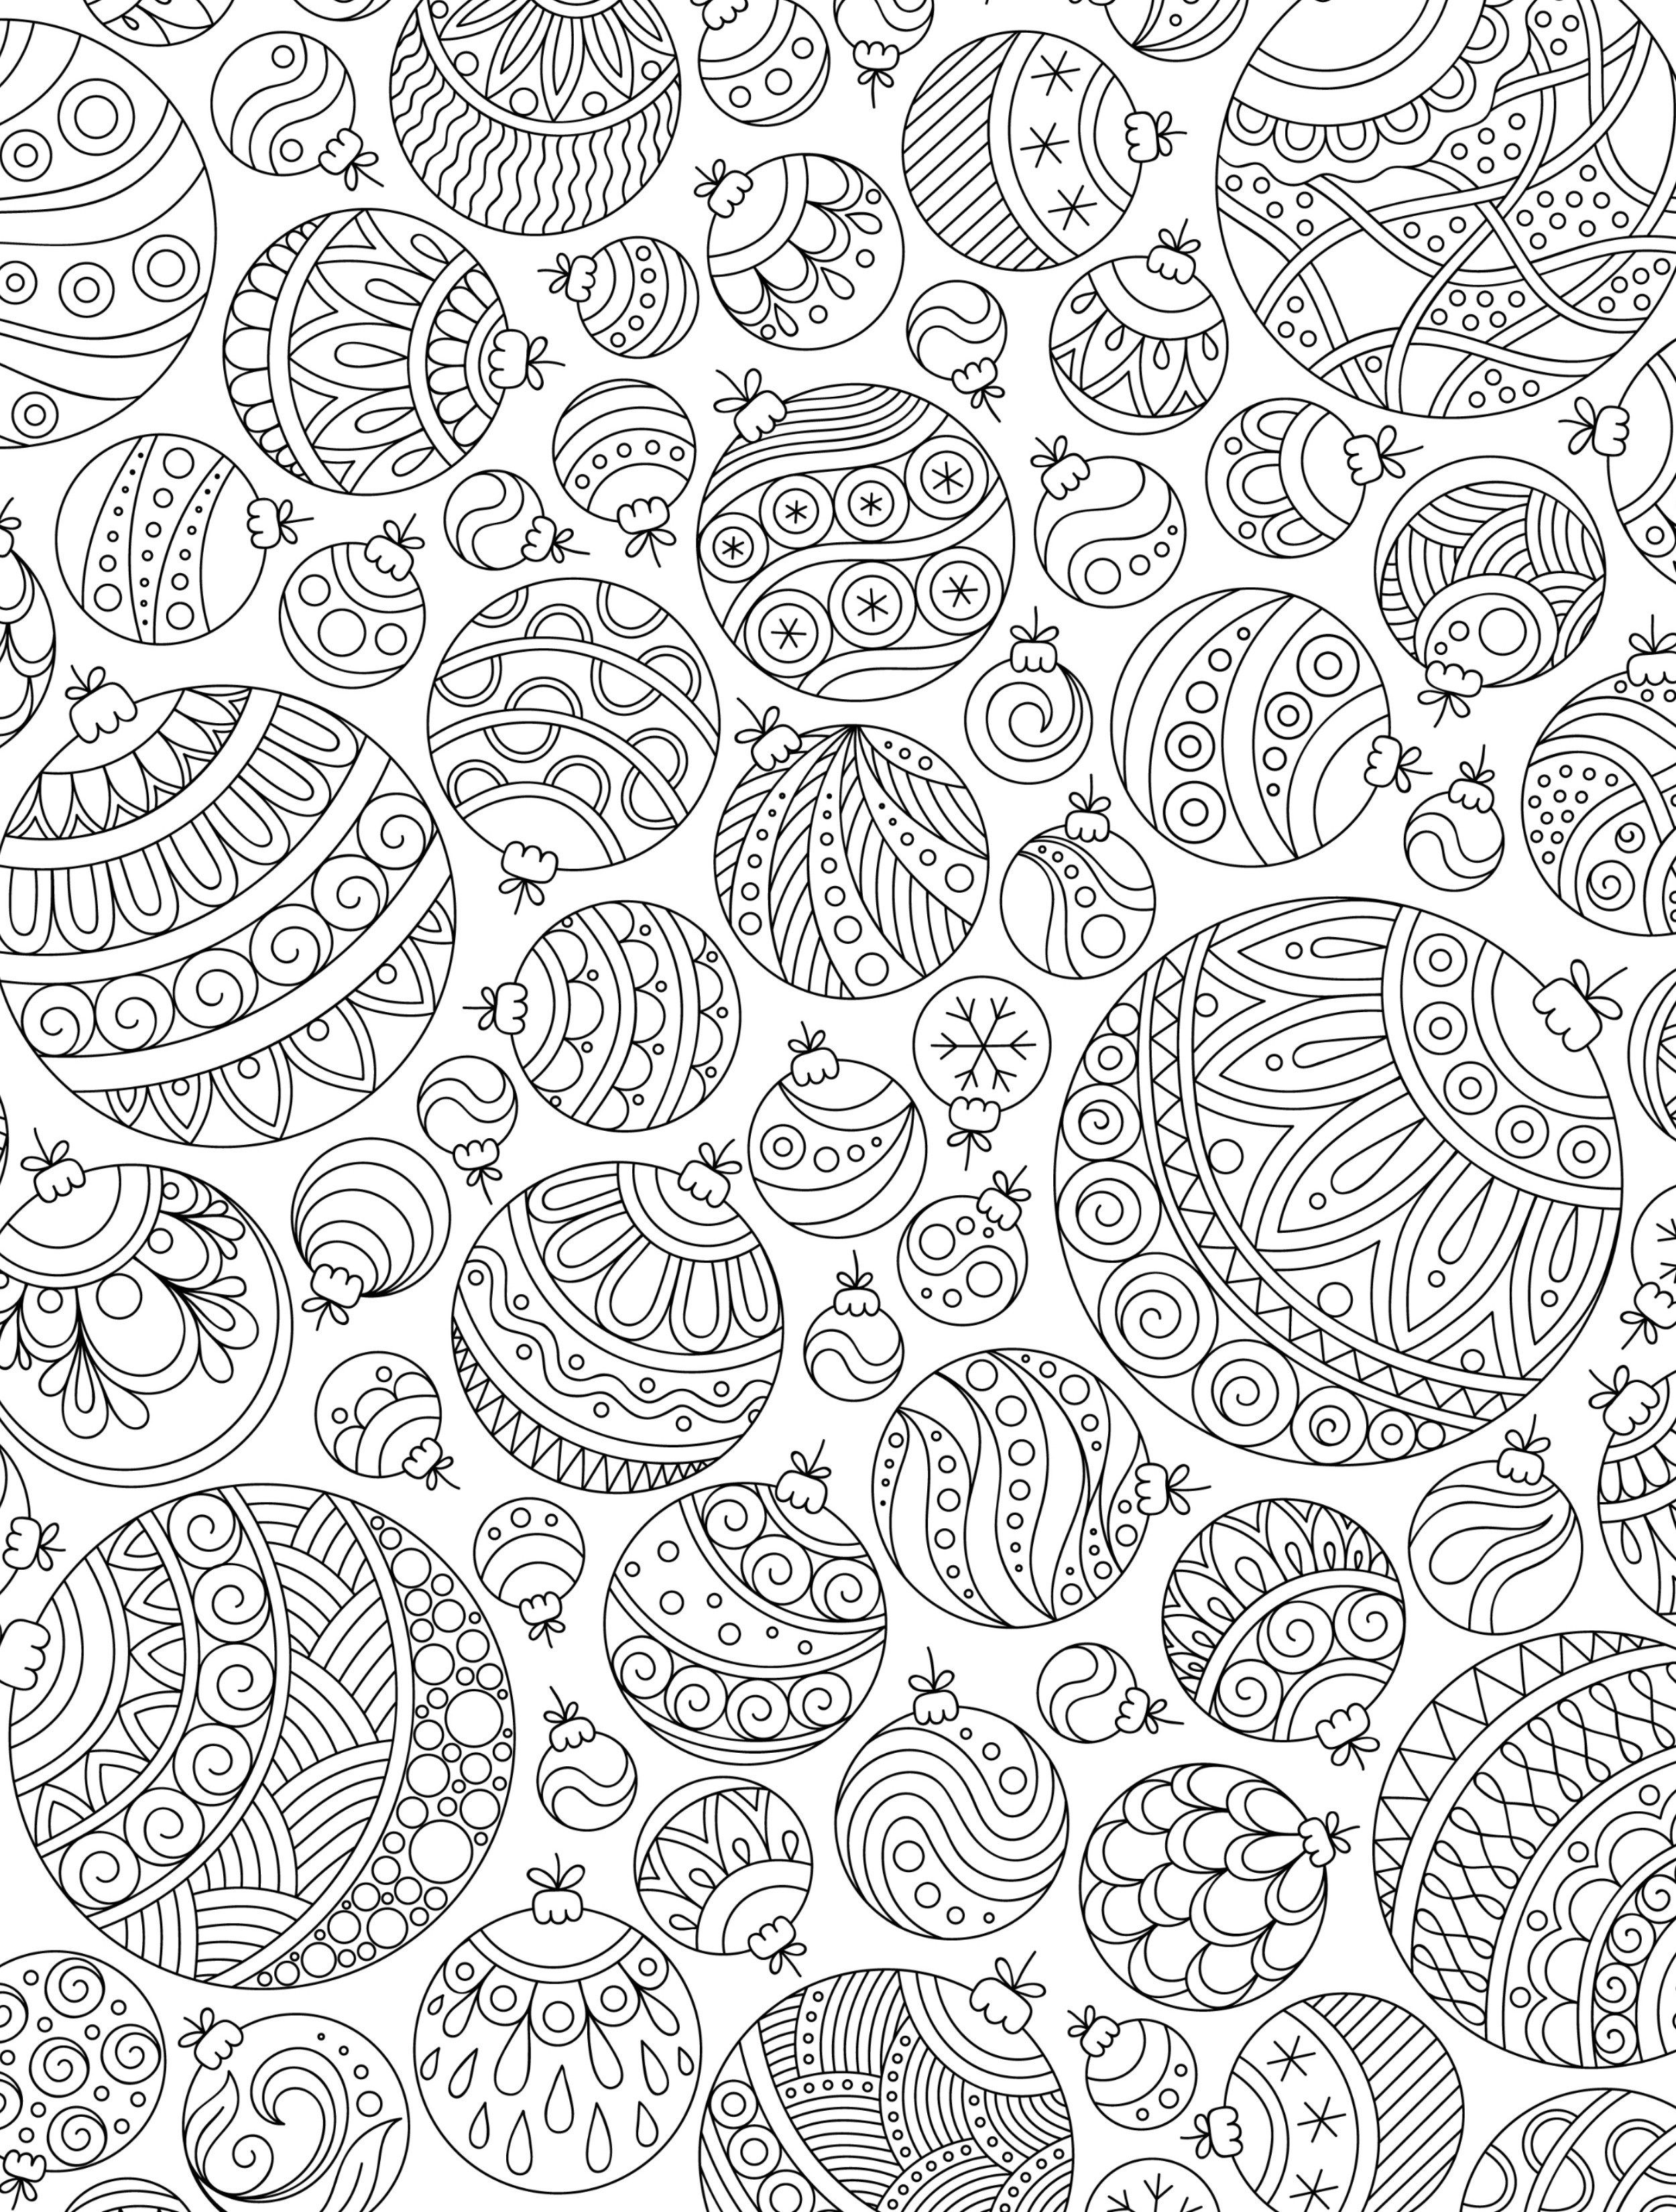 Free Downloadable Busy Coloring Pages For Adults Upload … Pinteres…